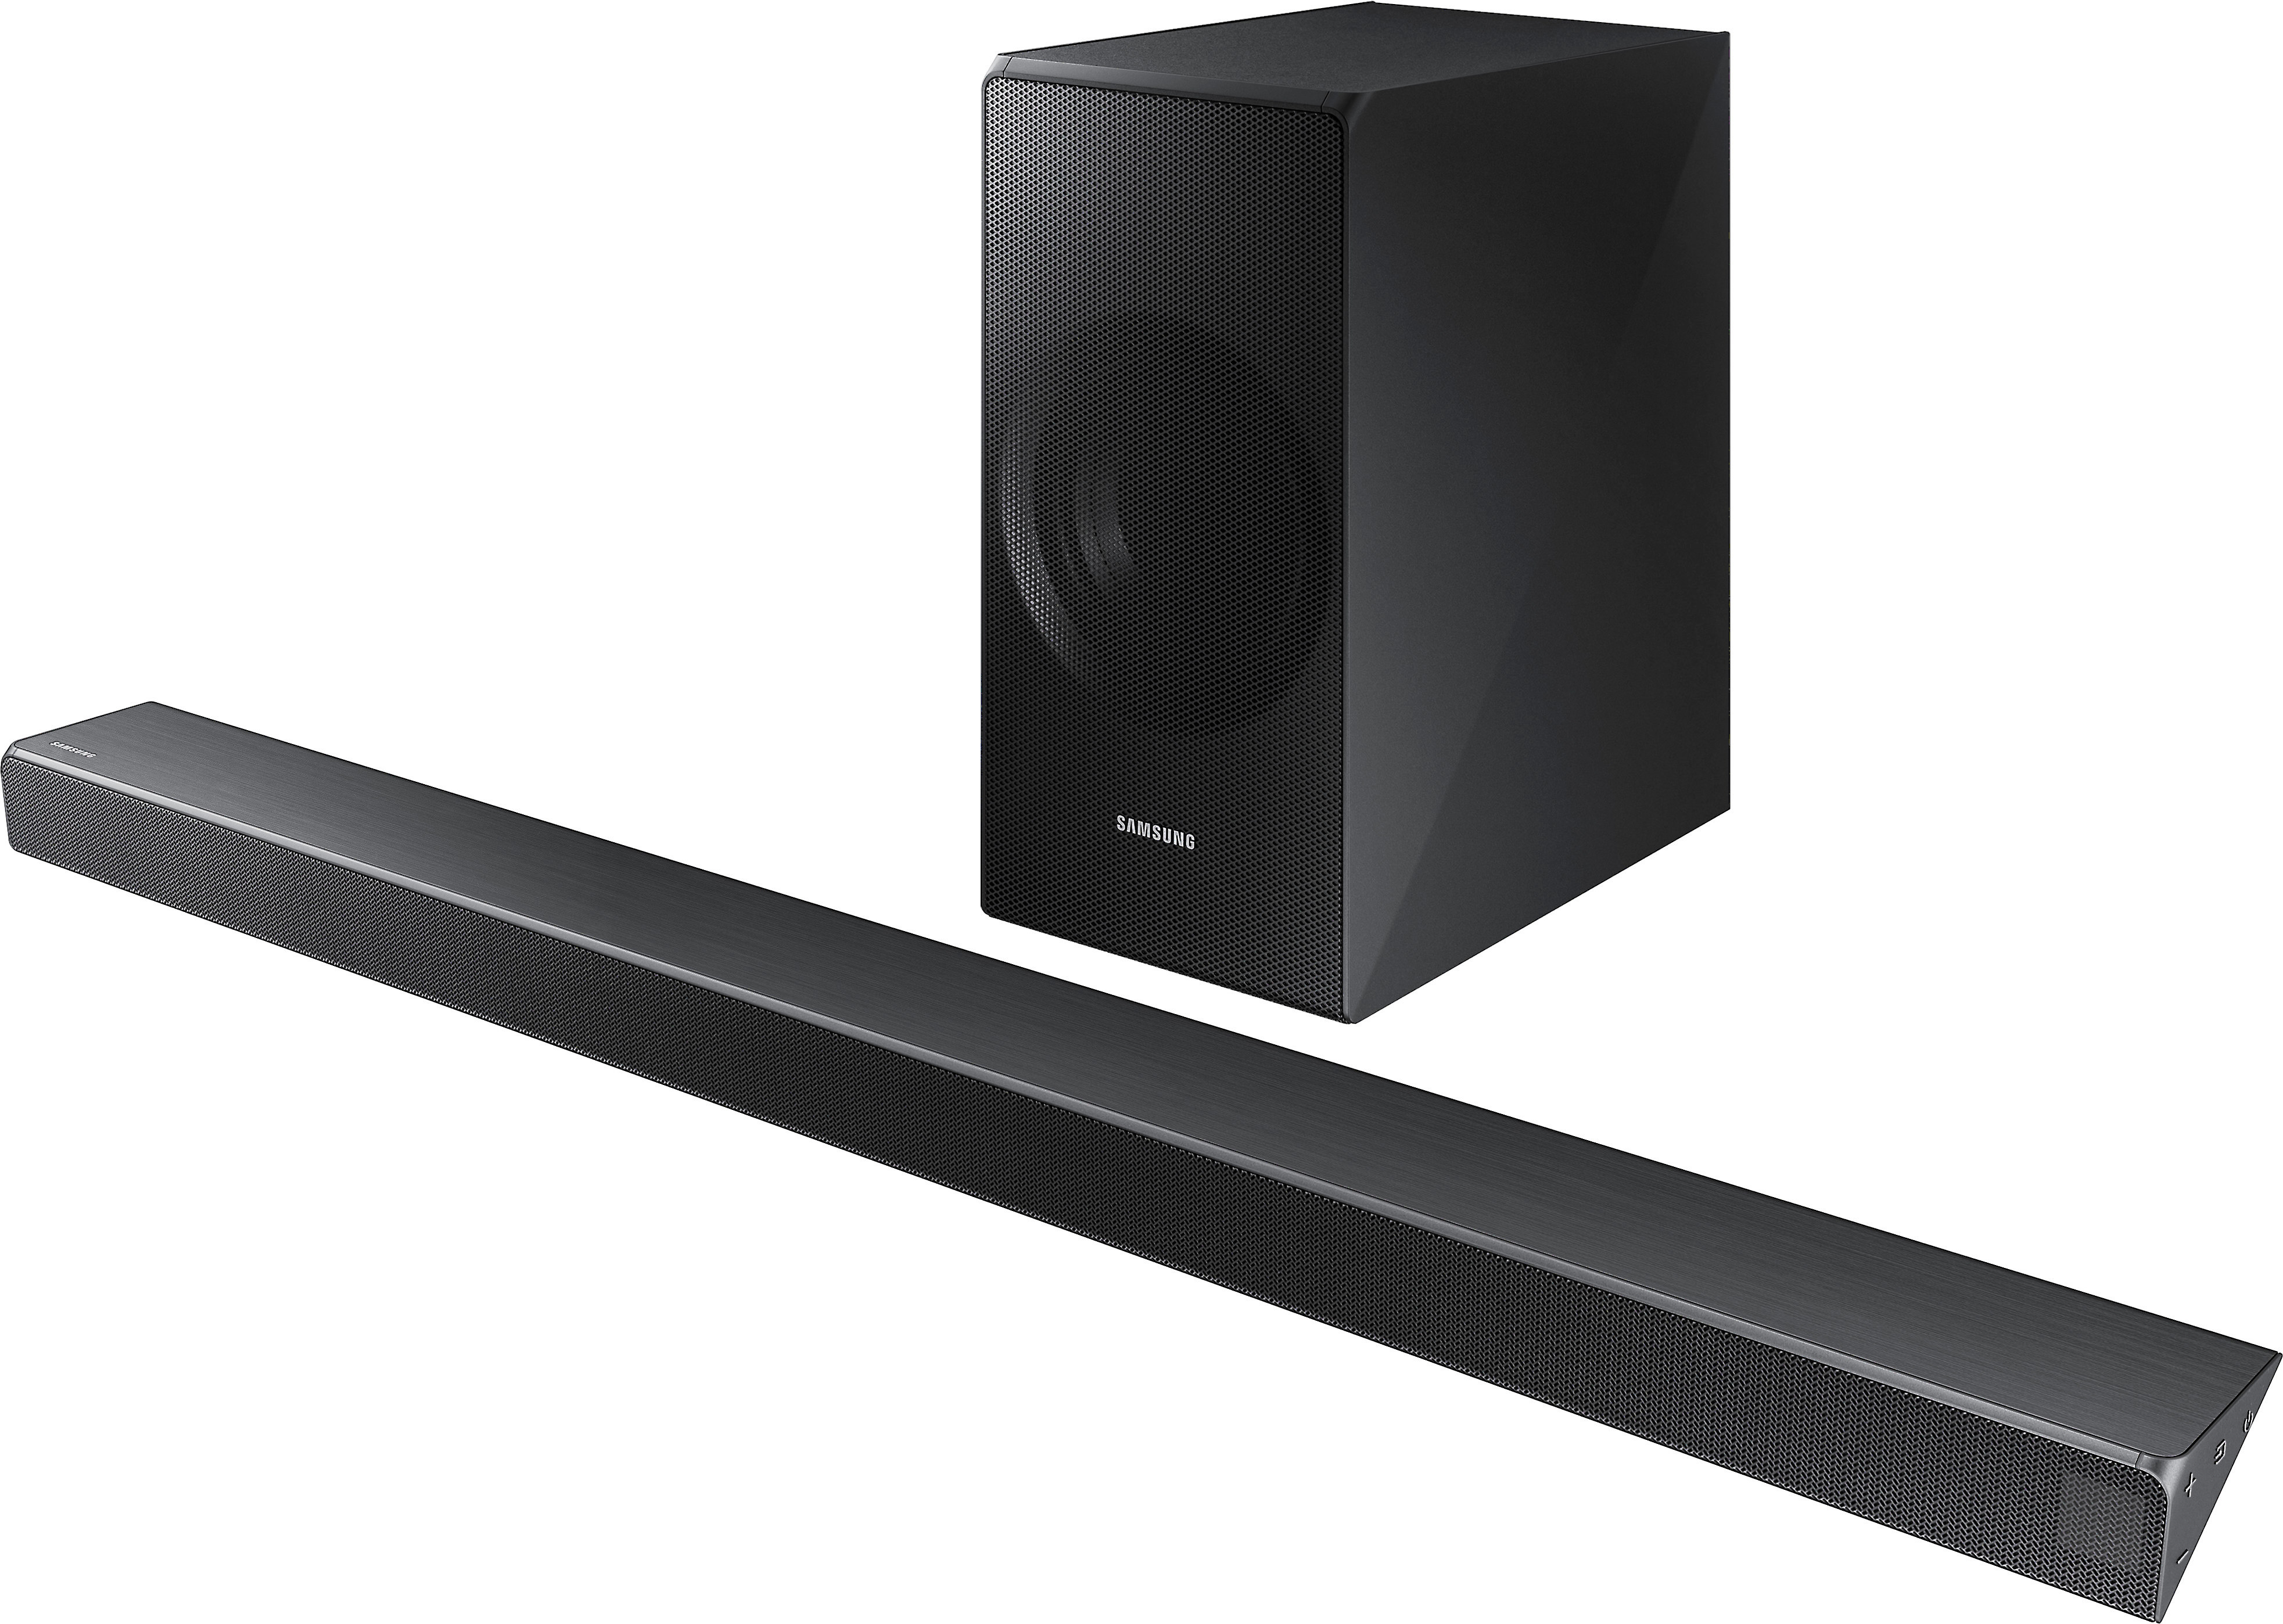 Samsung HW-N550 Powered 3.1-channel sound bar with wireless